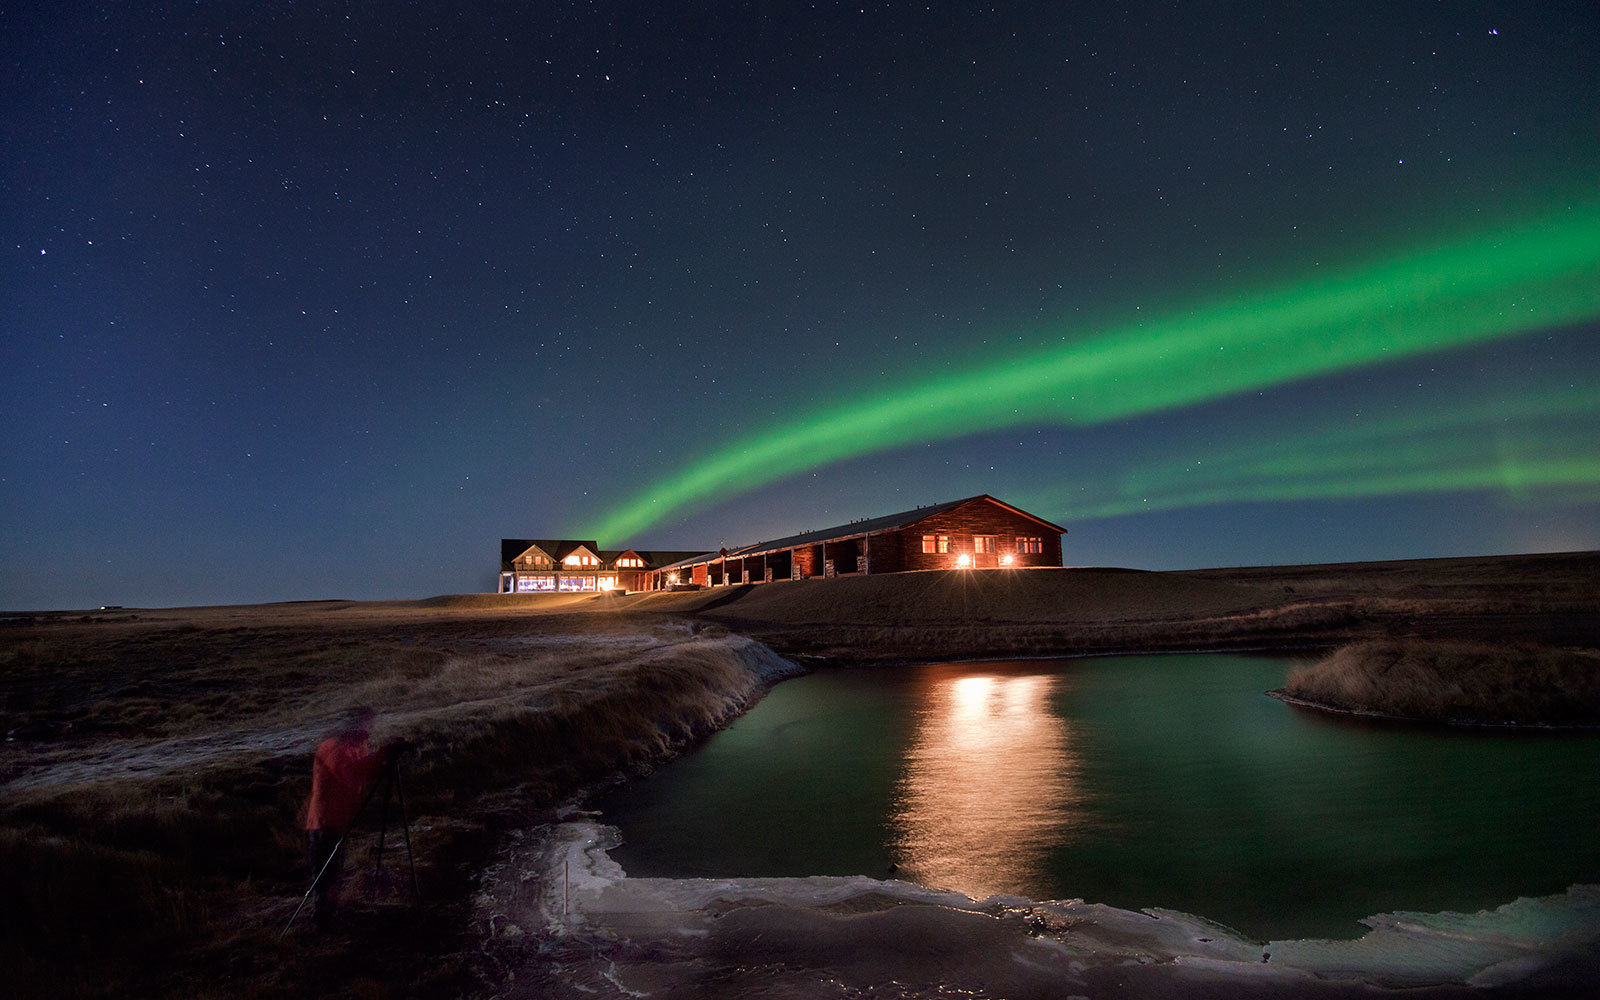 Stays at the Hotel Rangá come with views of the northern lights.